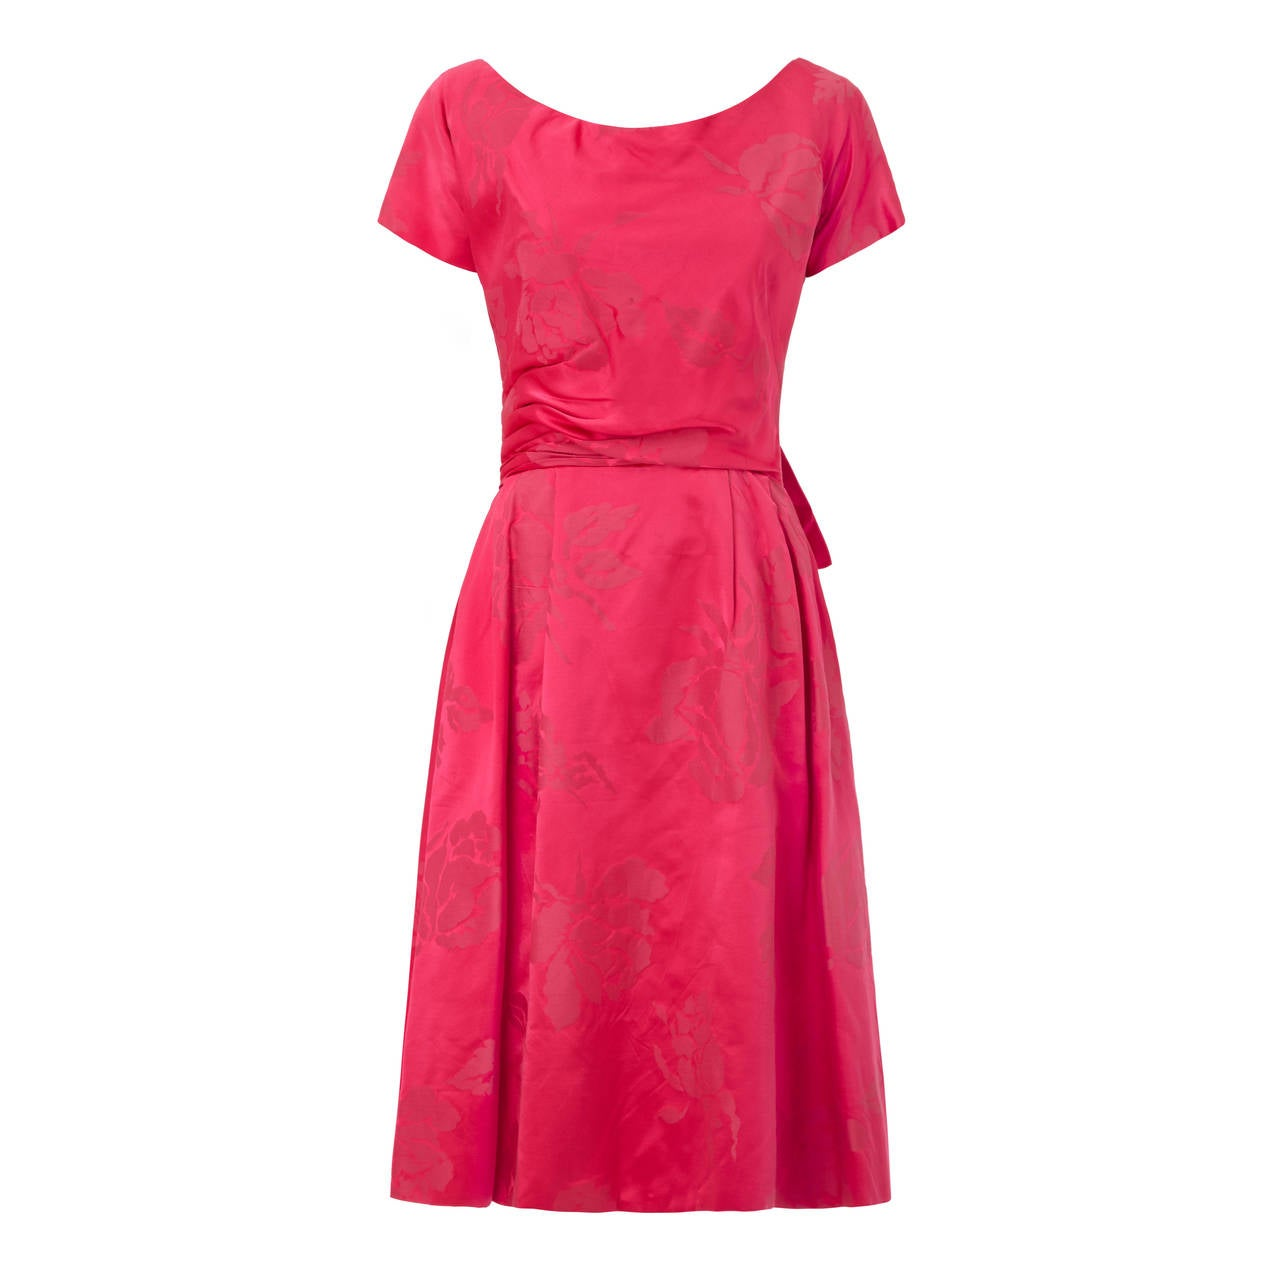 4cb8ae0a936 1950s Christian Dior Pattern Hot Pink Silk Floral Brocade Dress For Sale